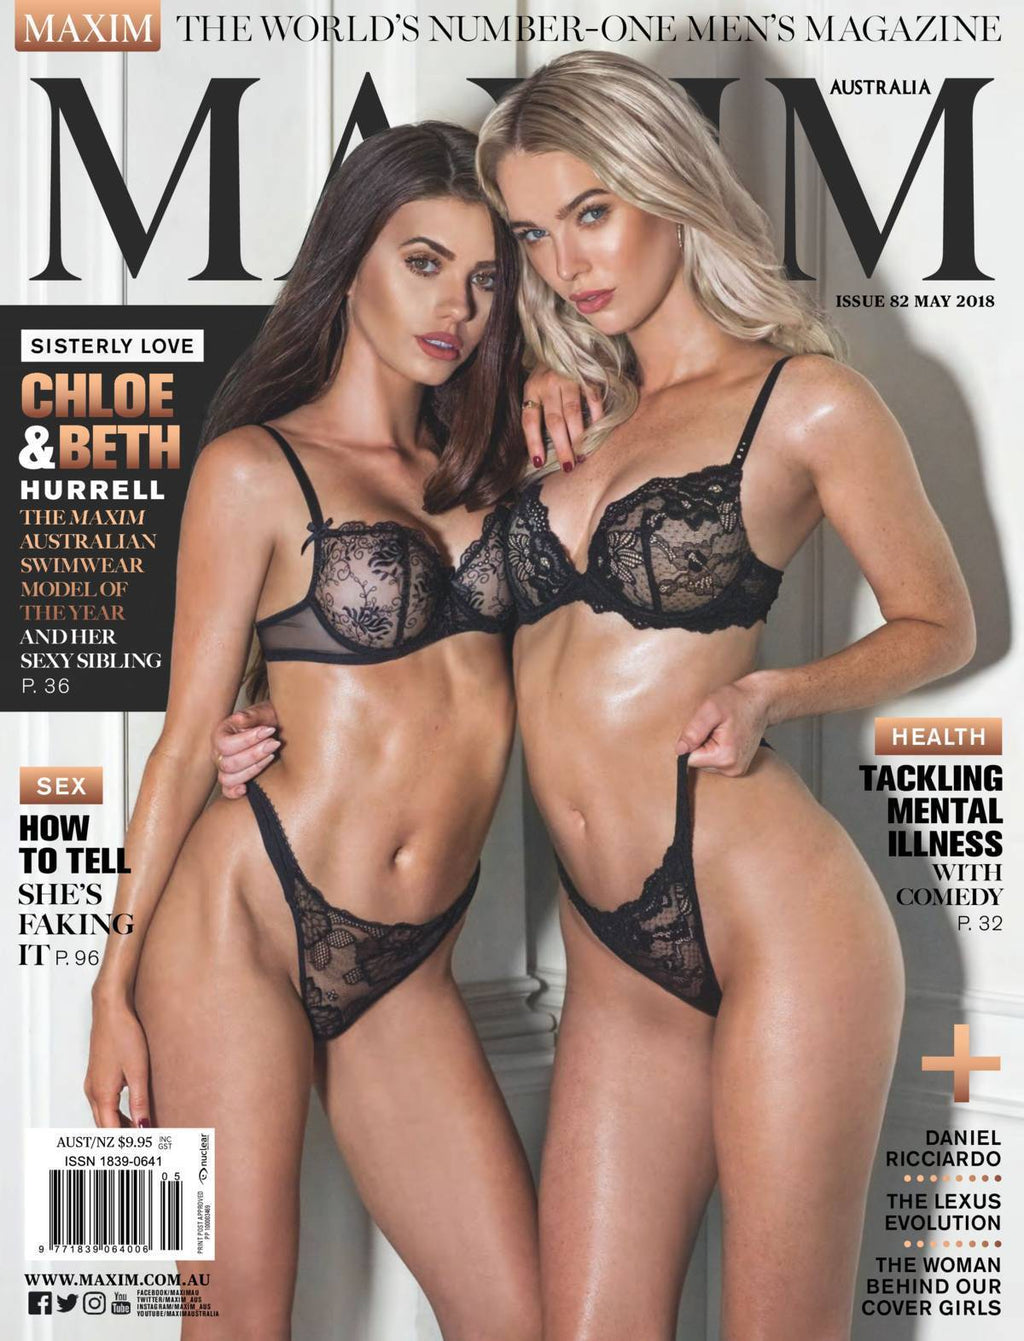 ff22b1534b1 Mary Holland Lingerie Featured in MAXIM Magazine Australia May 2018 – Mary  Holland Lingerie   Swimwear